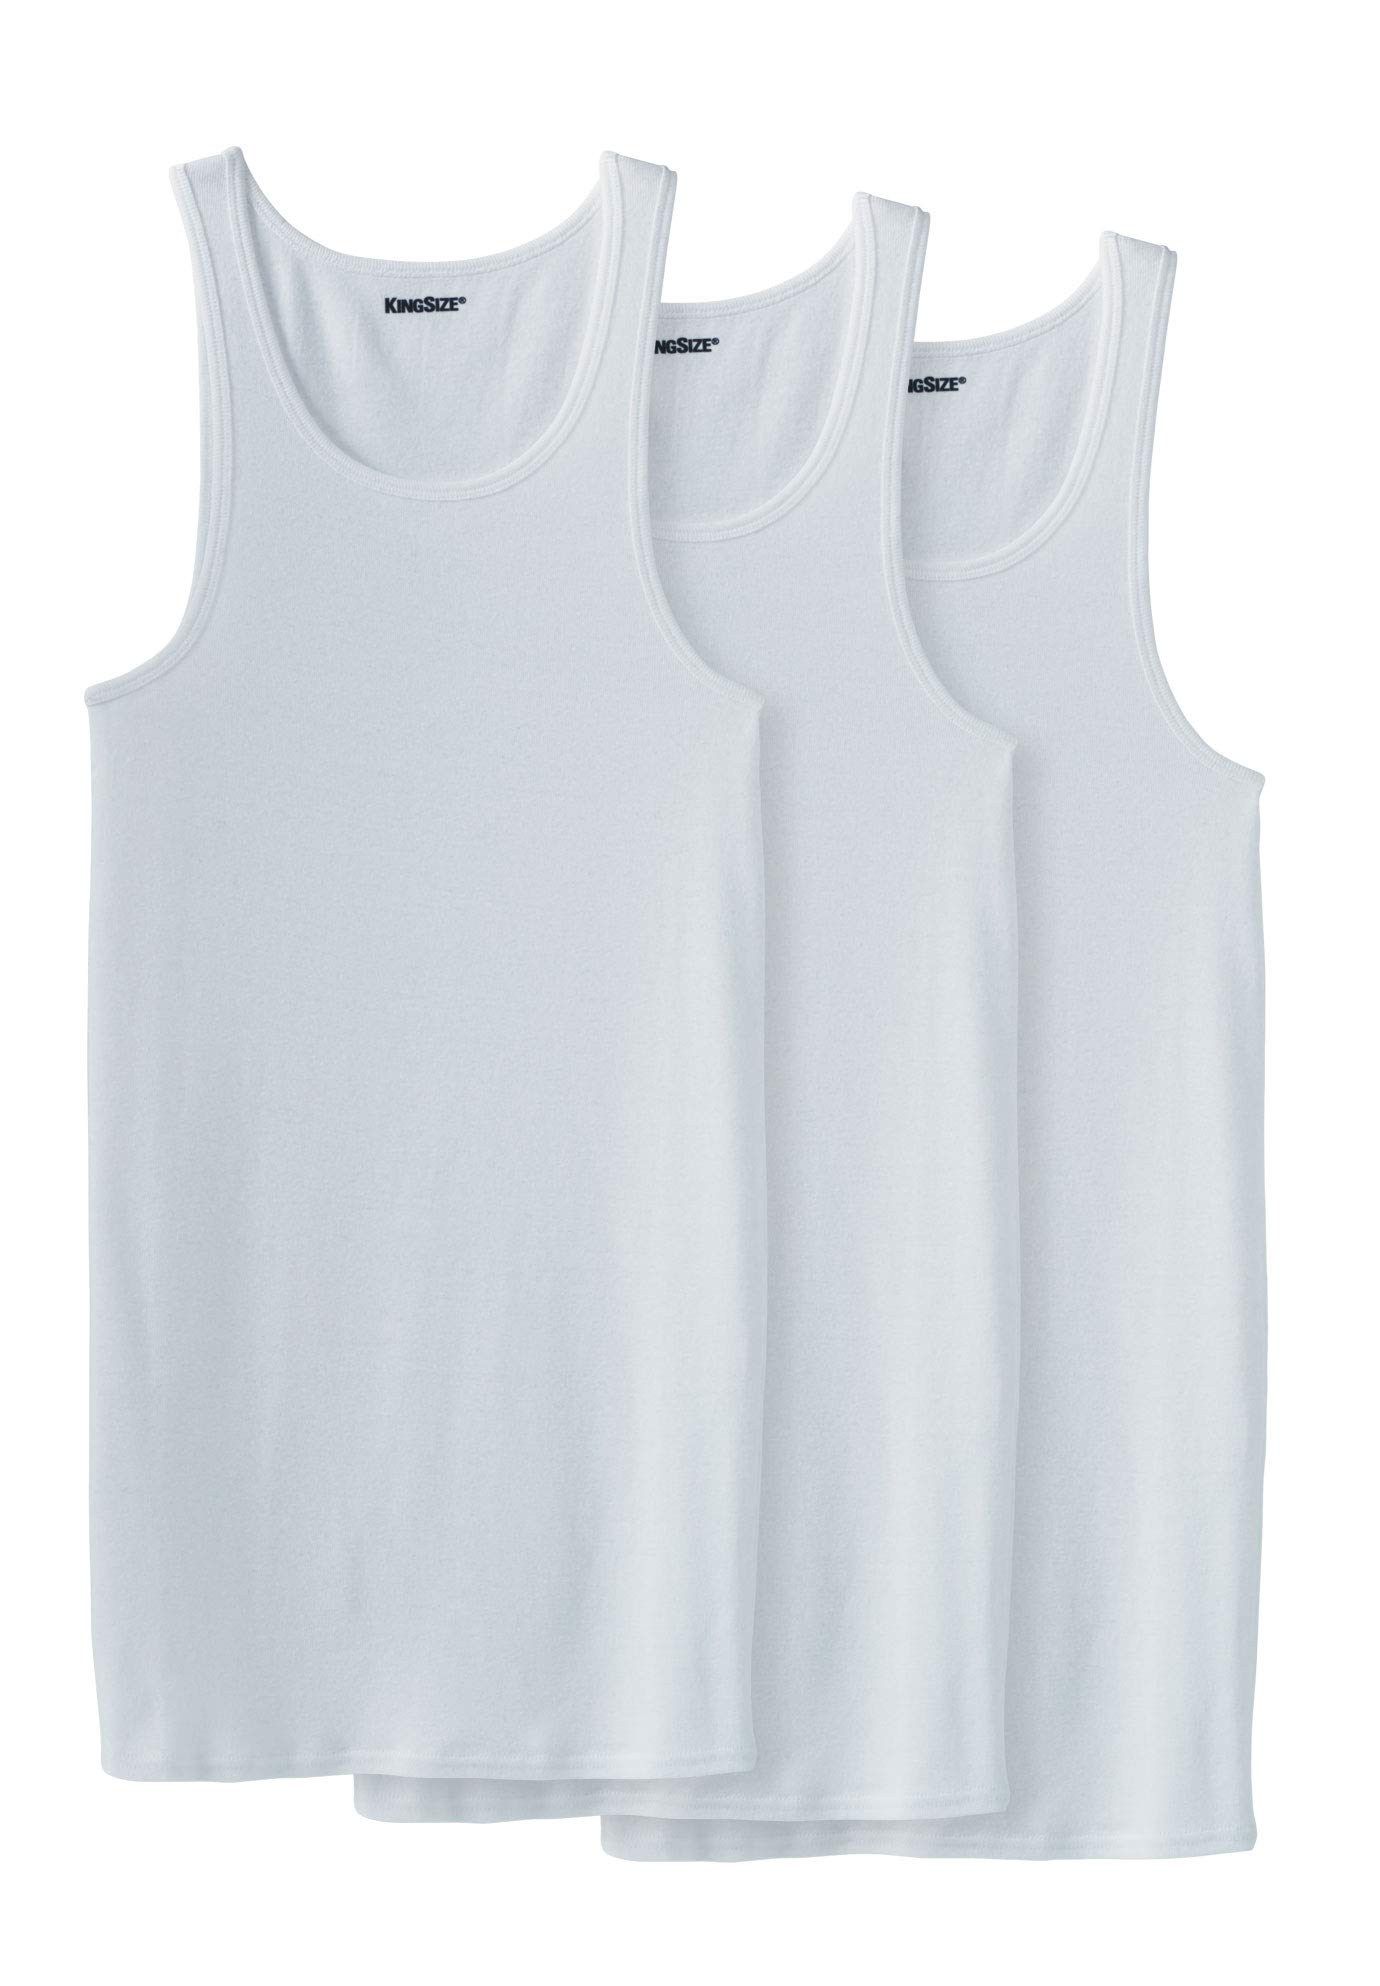 KingSize Men's Big & Tall Cotton Tank Undershirt 3-Pack, White Tall-4XL by KingSize